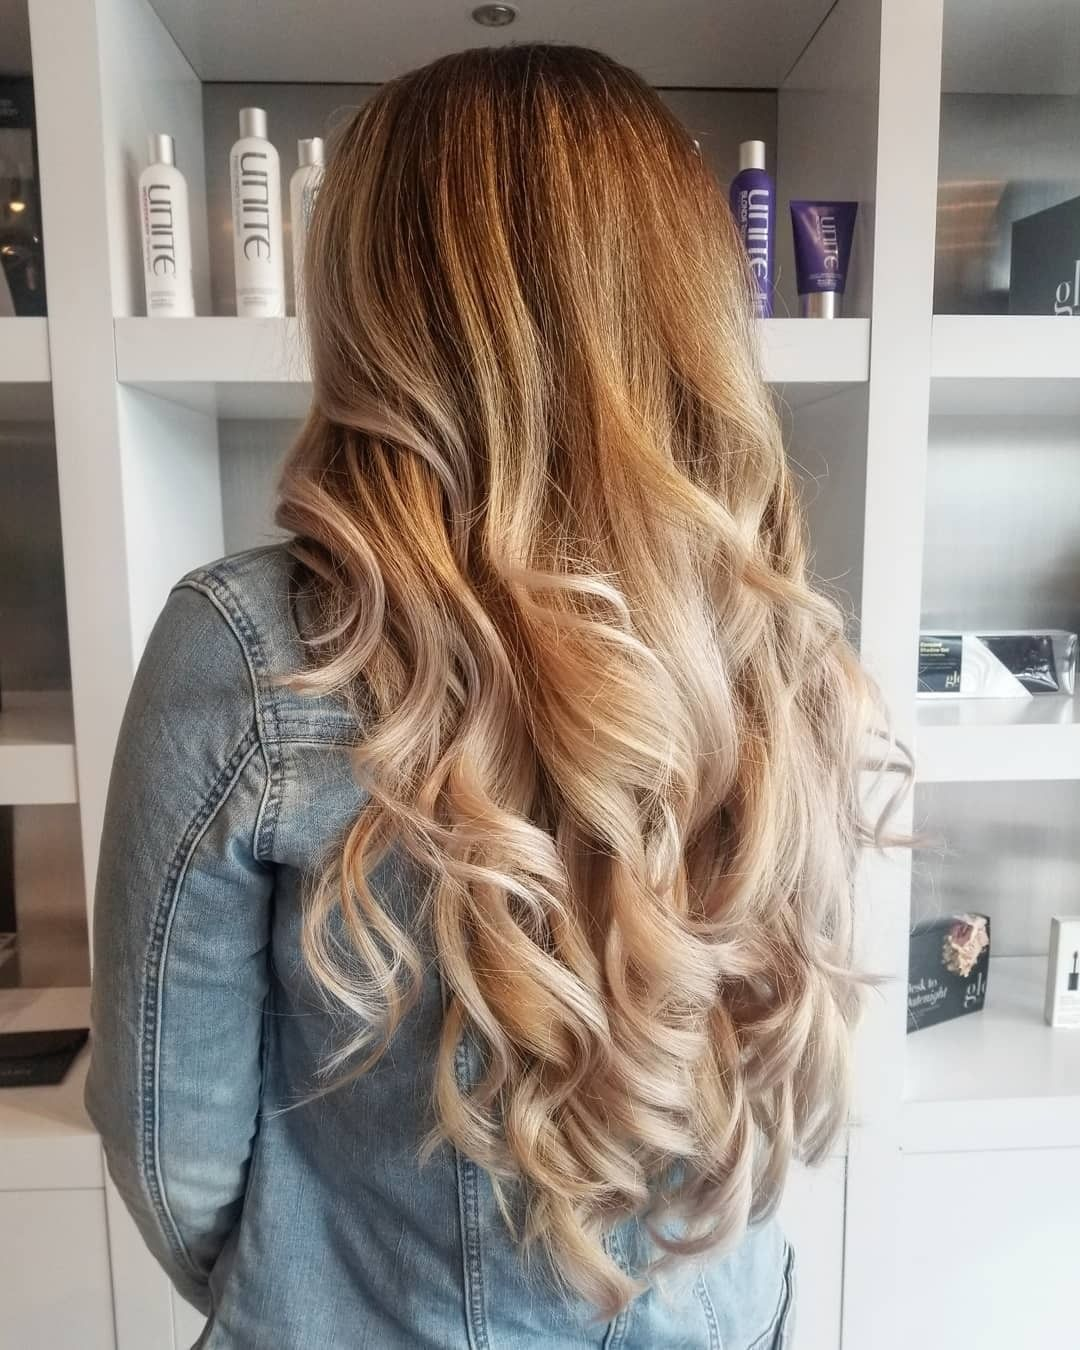 49++ Blow dry bar hairstyles inspirations